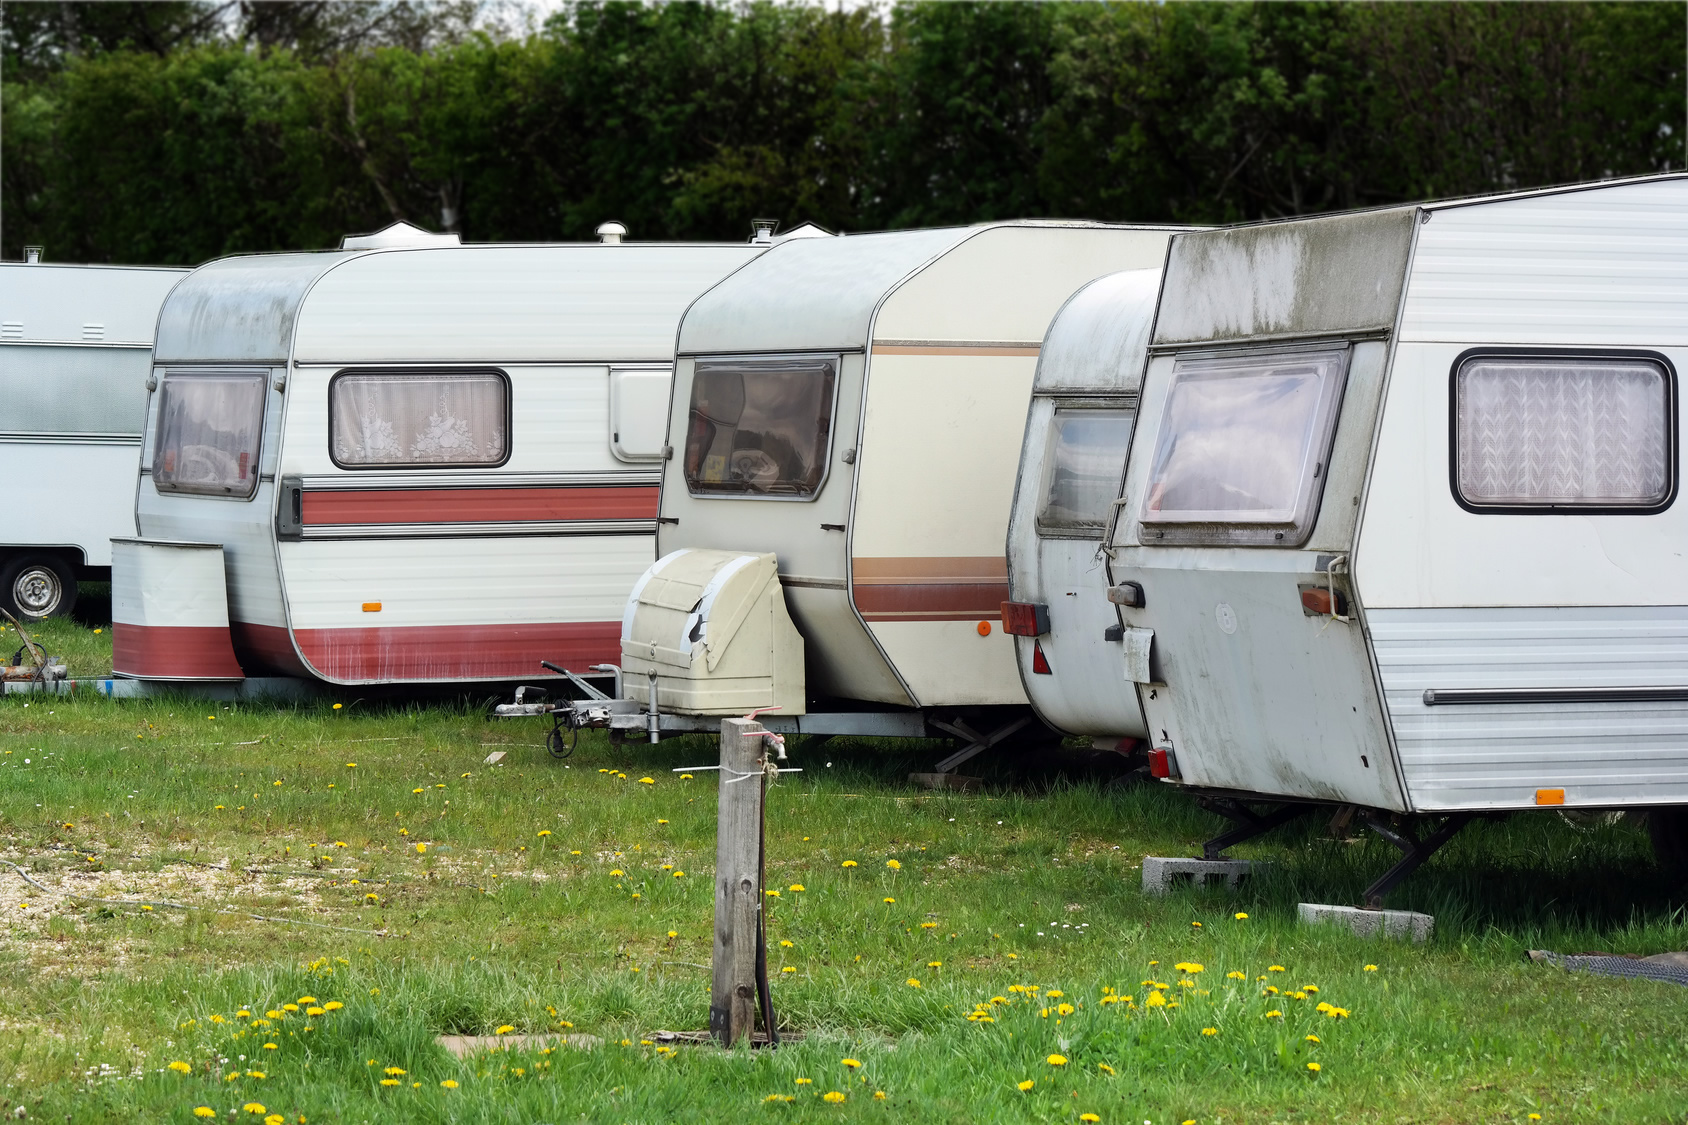 evicting travellers